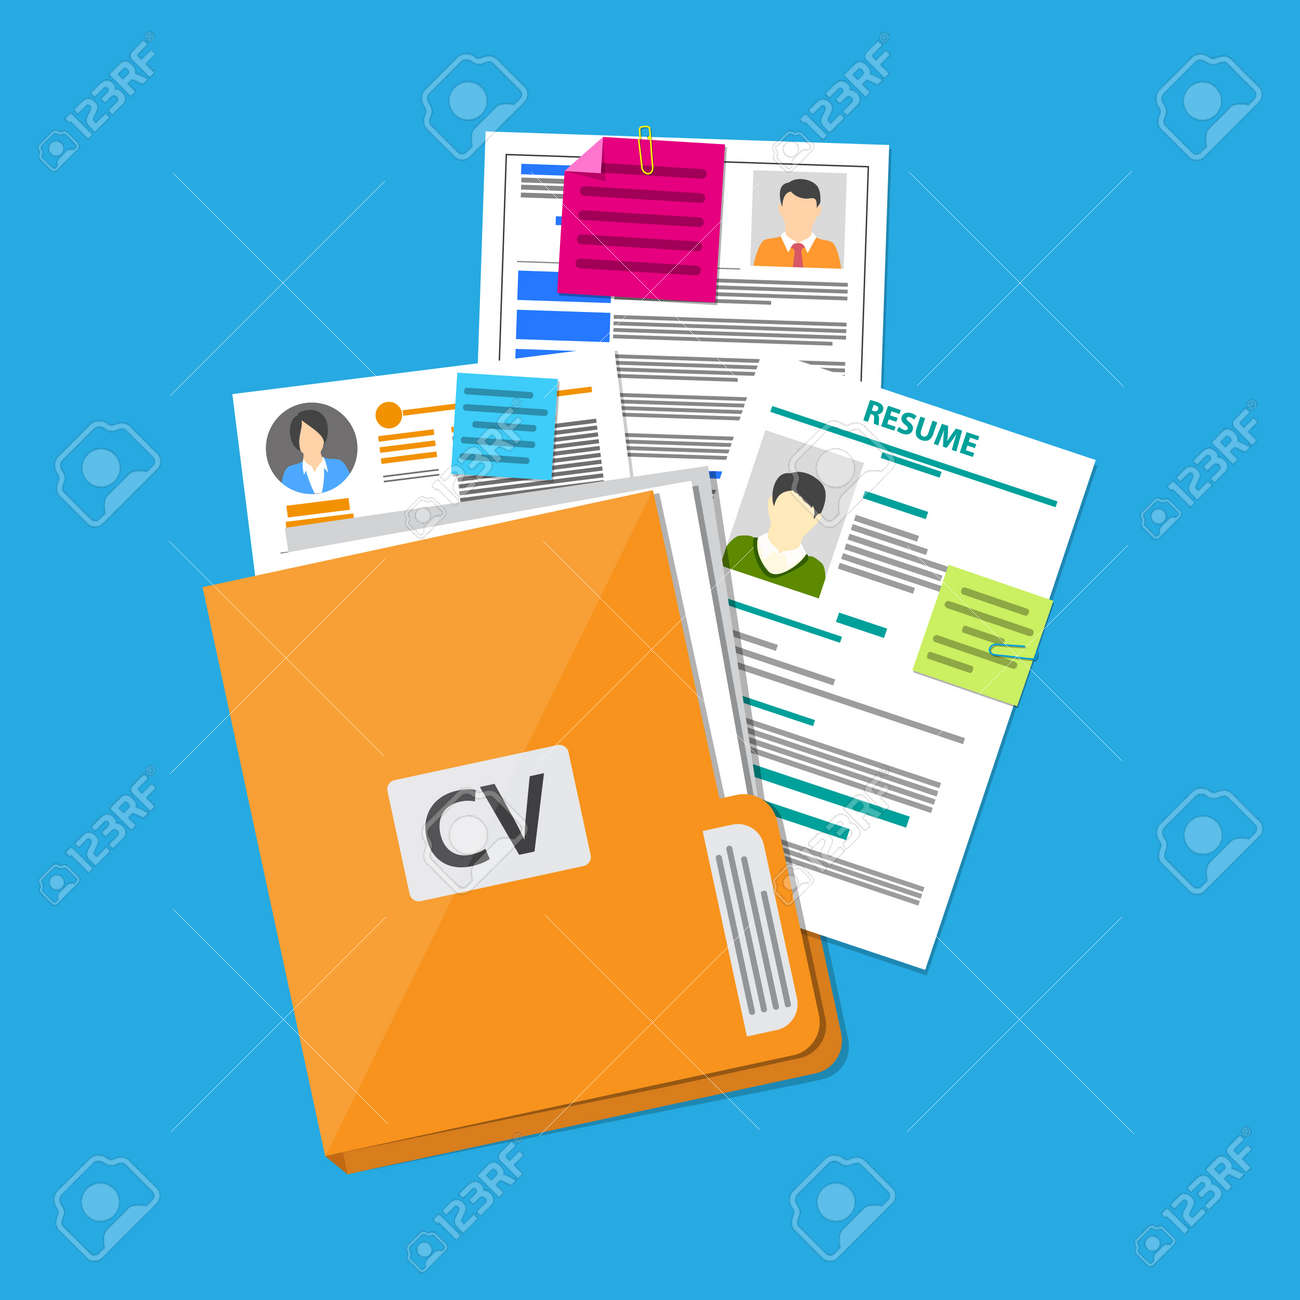 human resources management concept searching professional staff